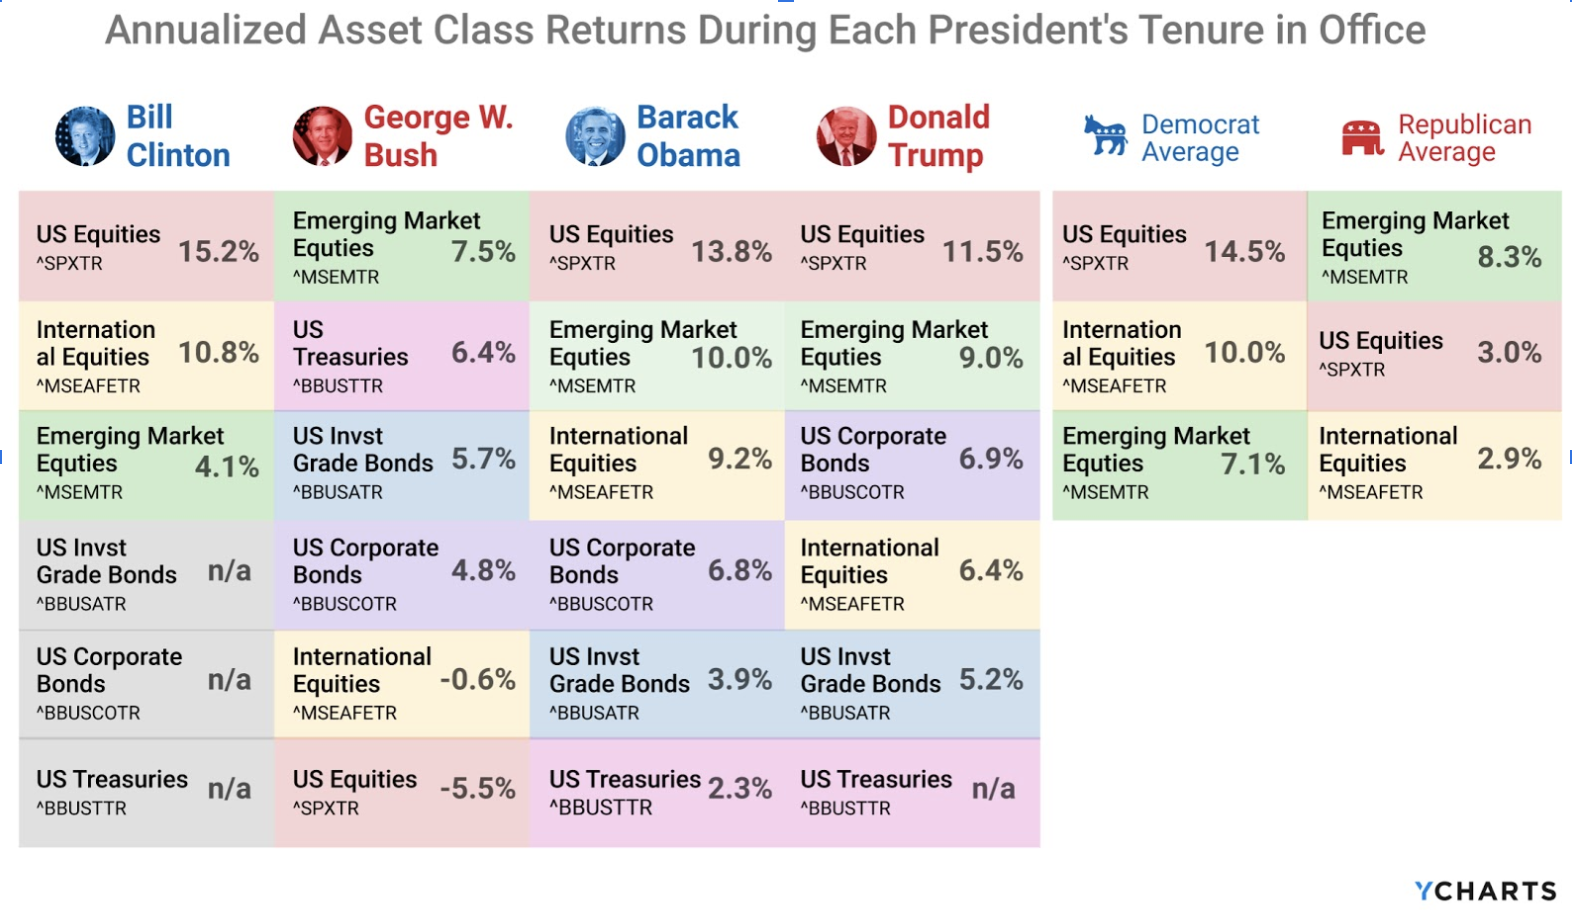 Annualized Asset Class Returns During Each President's Tenure in Office